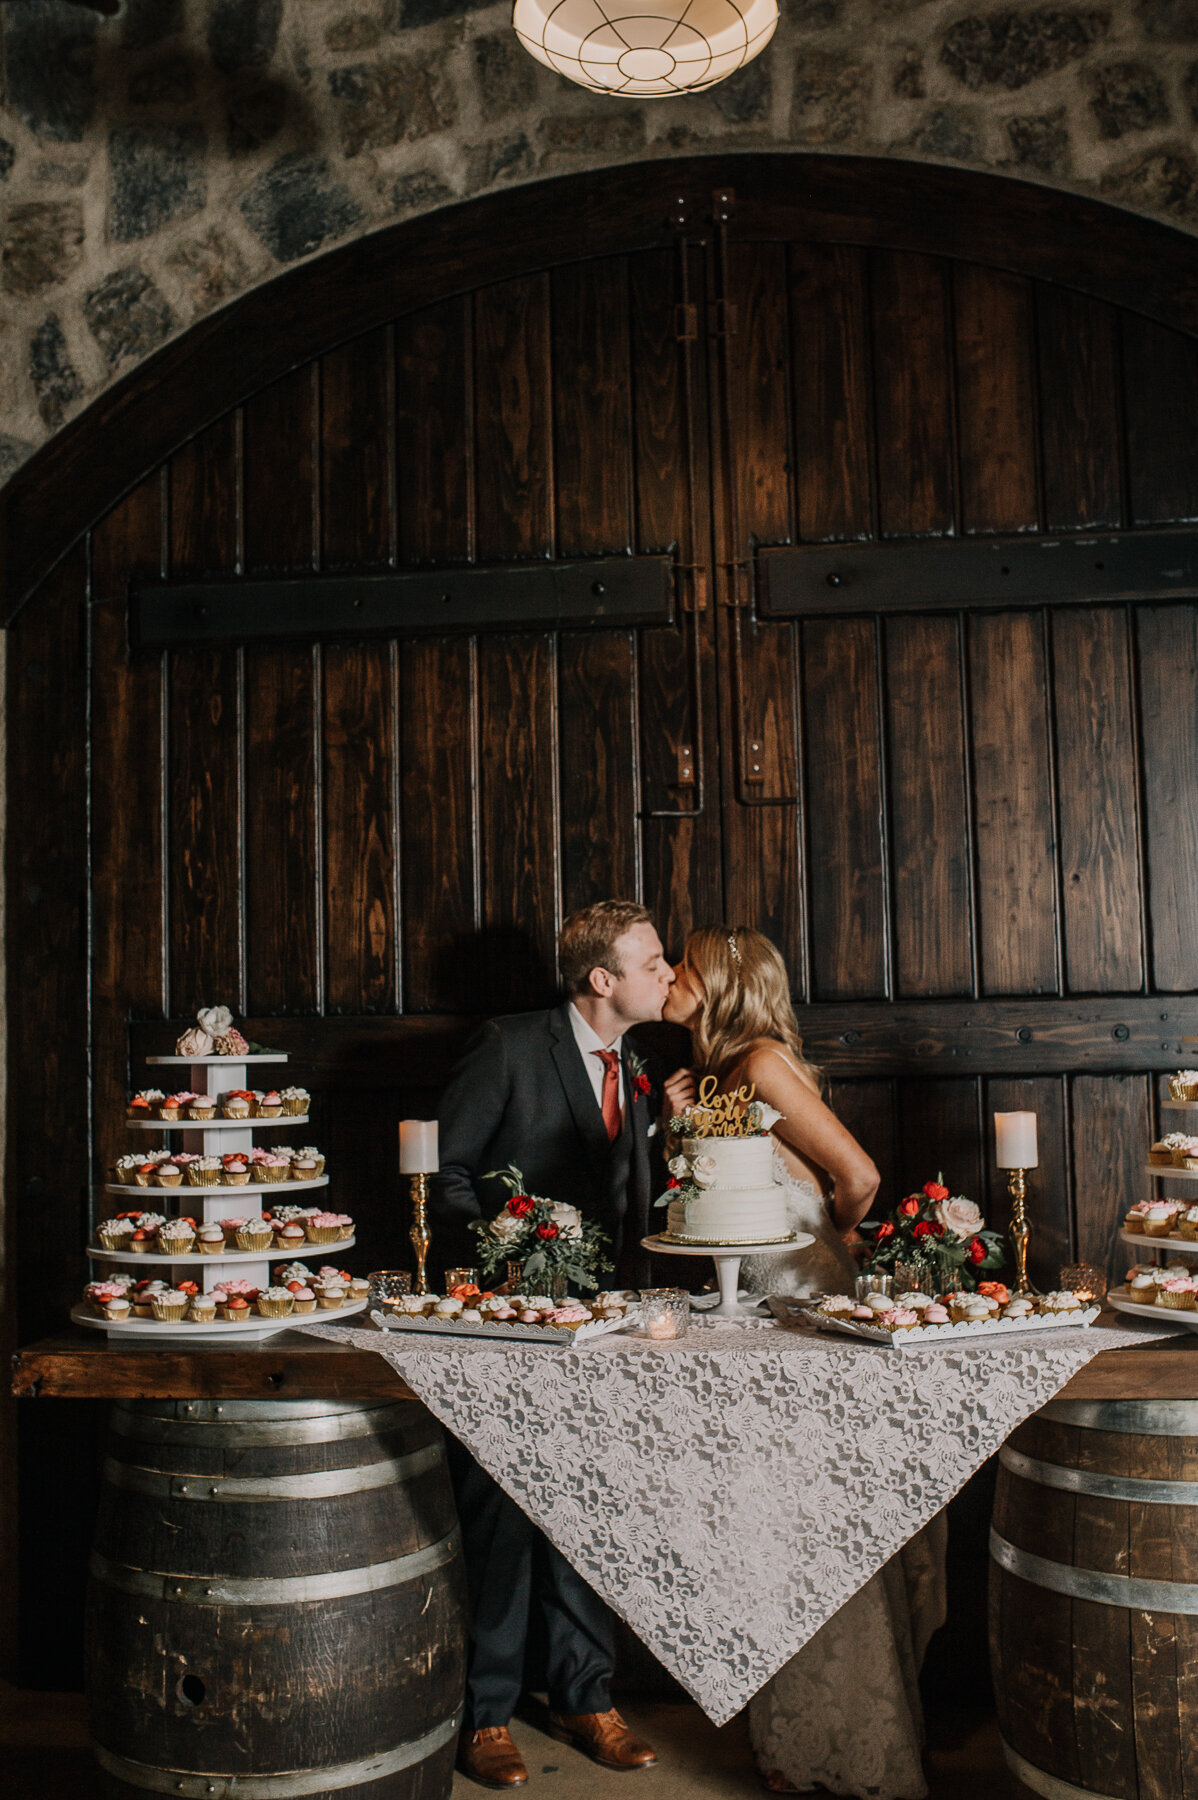 1107Swiftwater Cellars Wedding_Cle Elum Wedding_Montana Wedding Photographer_Kat & Kyle_September 15, 2018-319.jpg